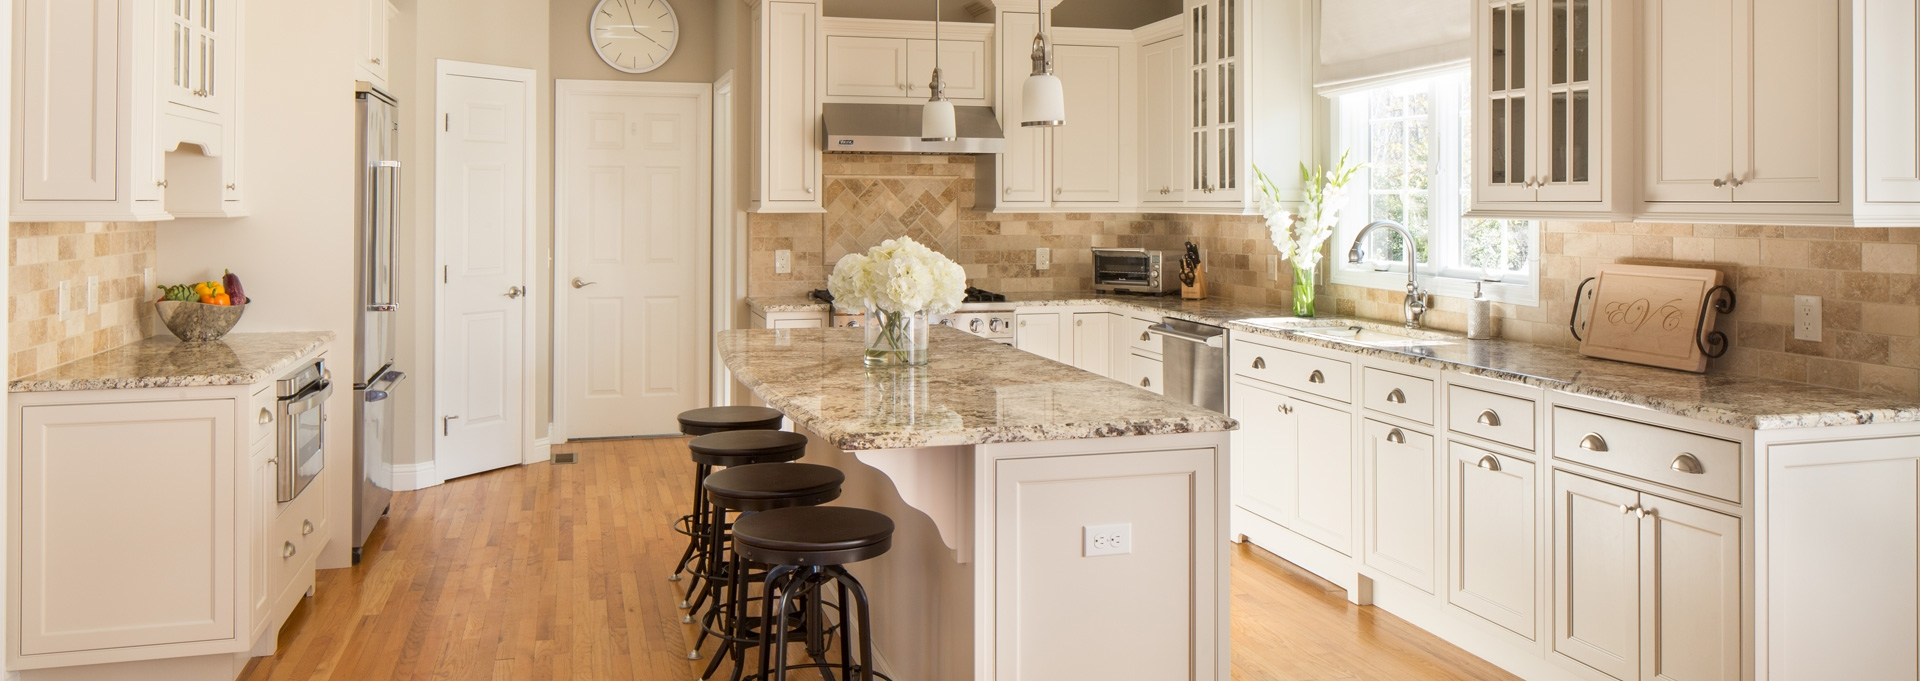 Warm White Kitchen Remodel Kitchen & Bath Gallery MA RI CT